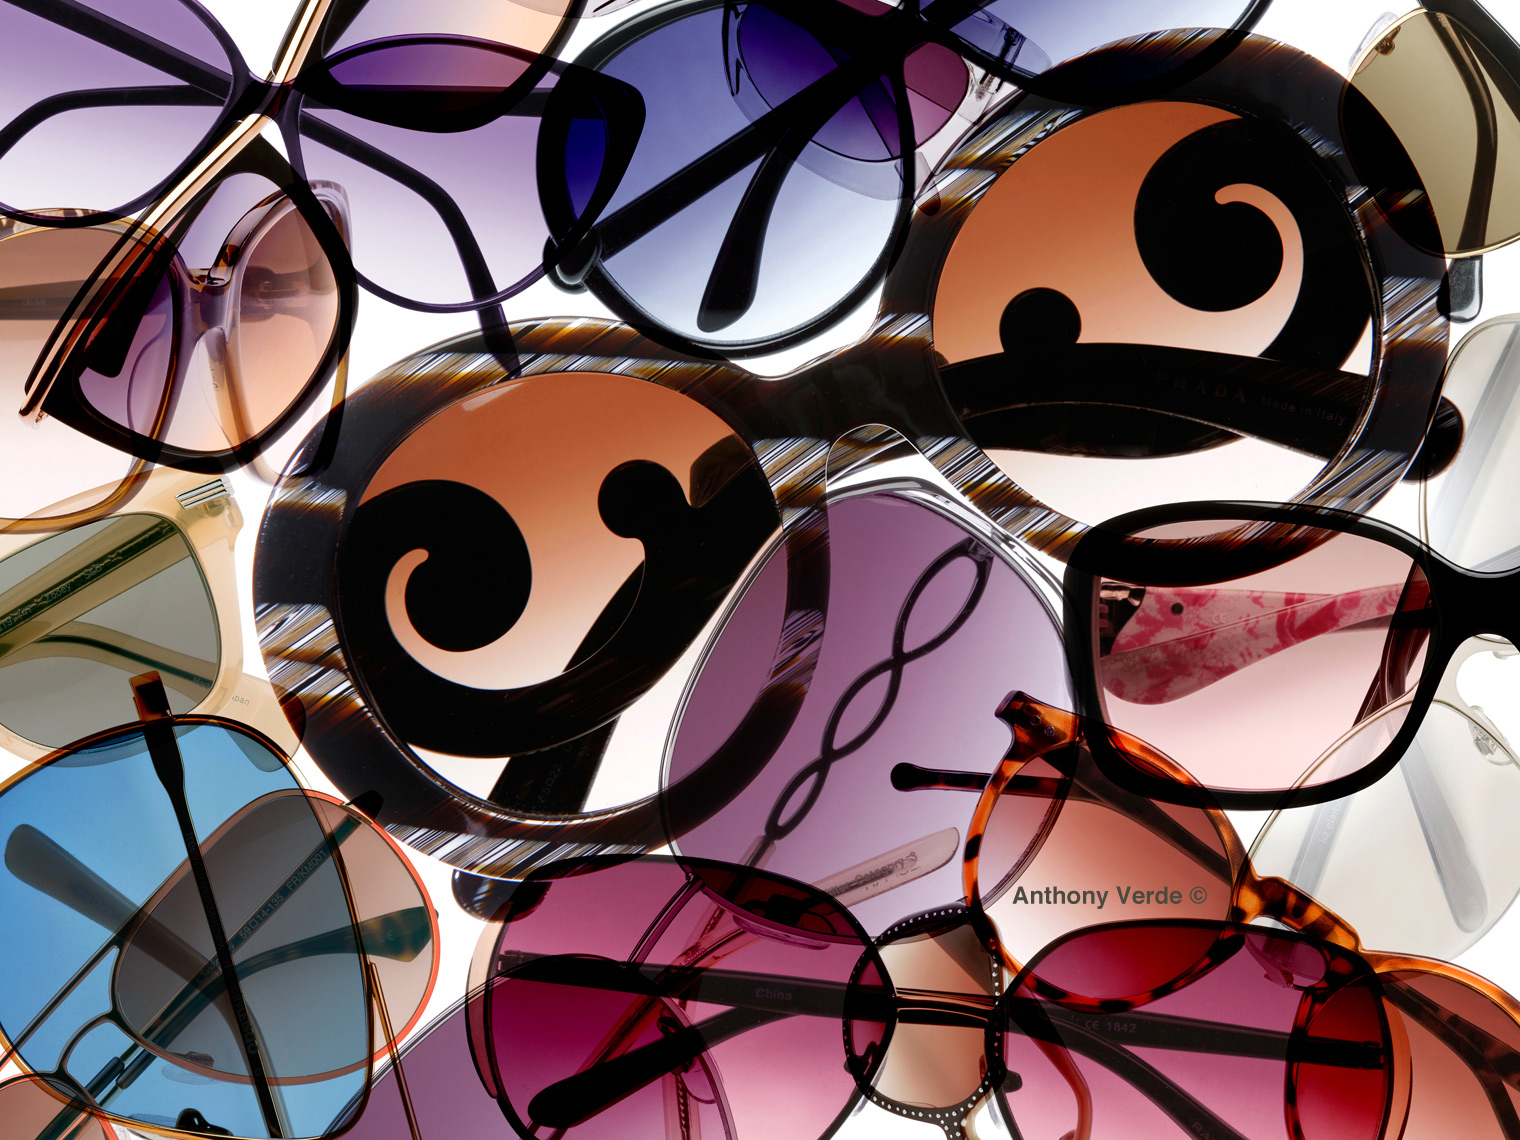 sunglasses-composite-still-life-photography